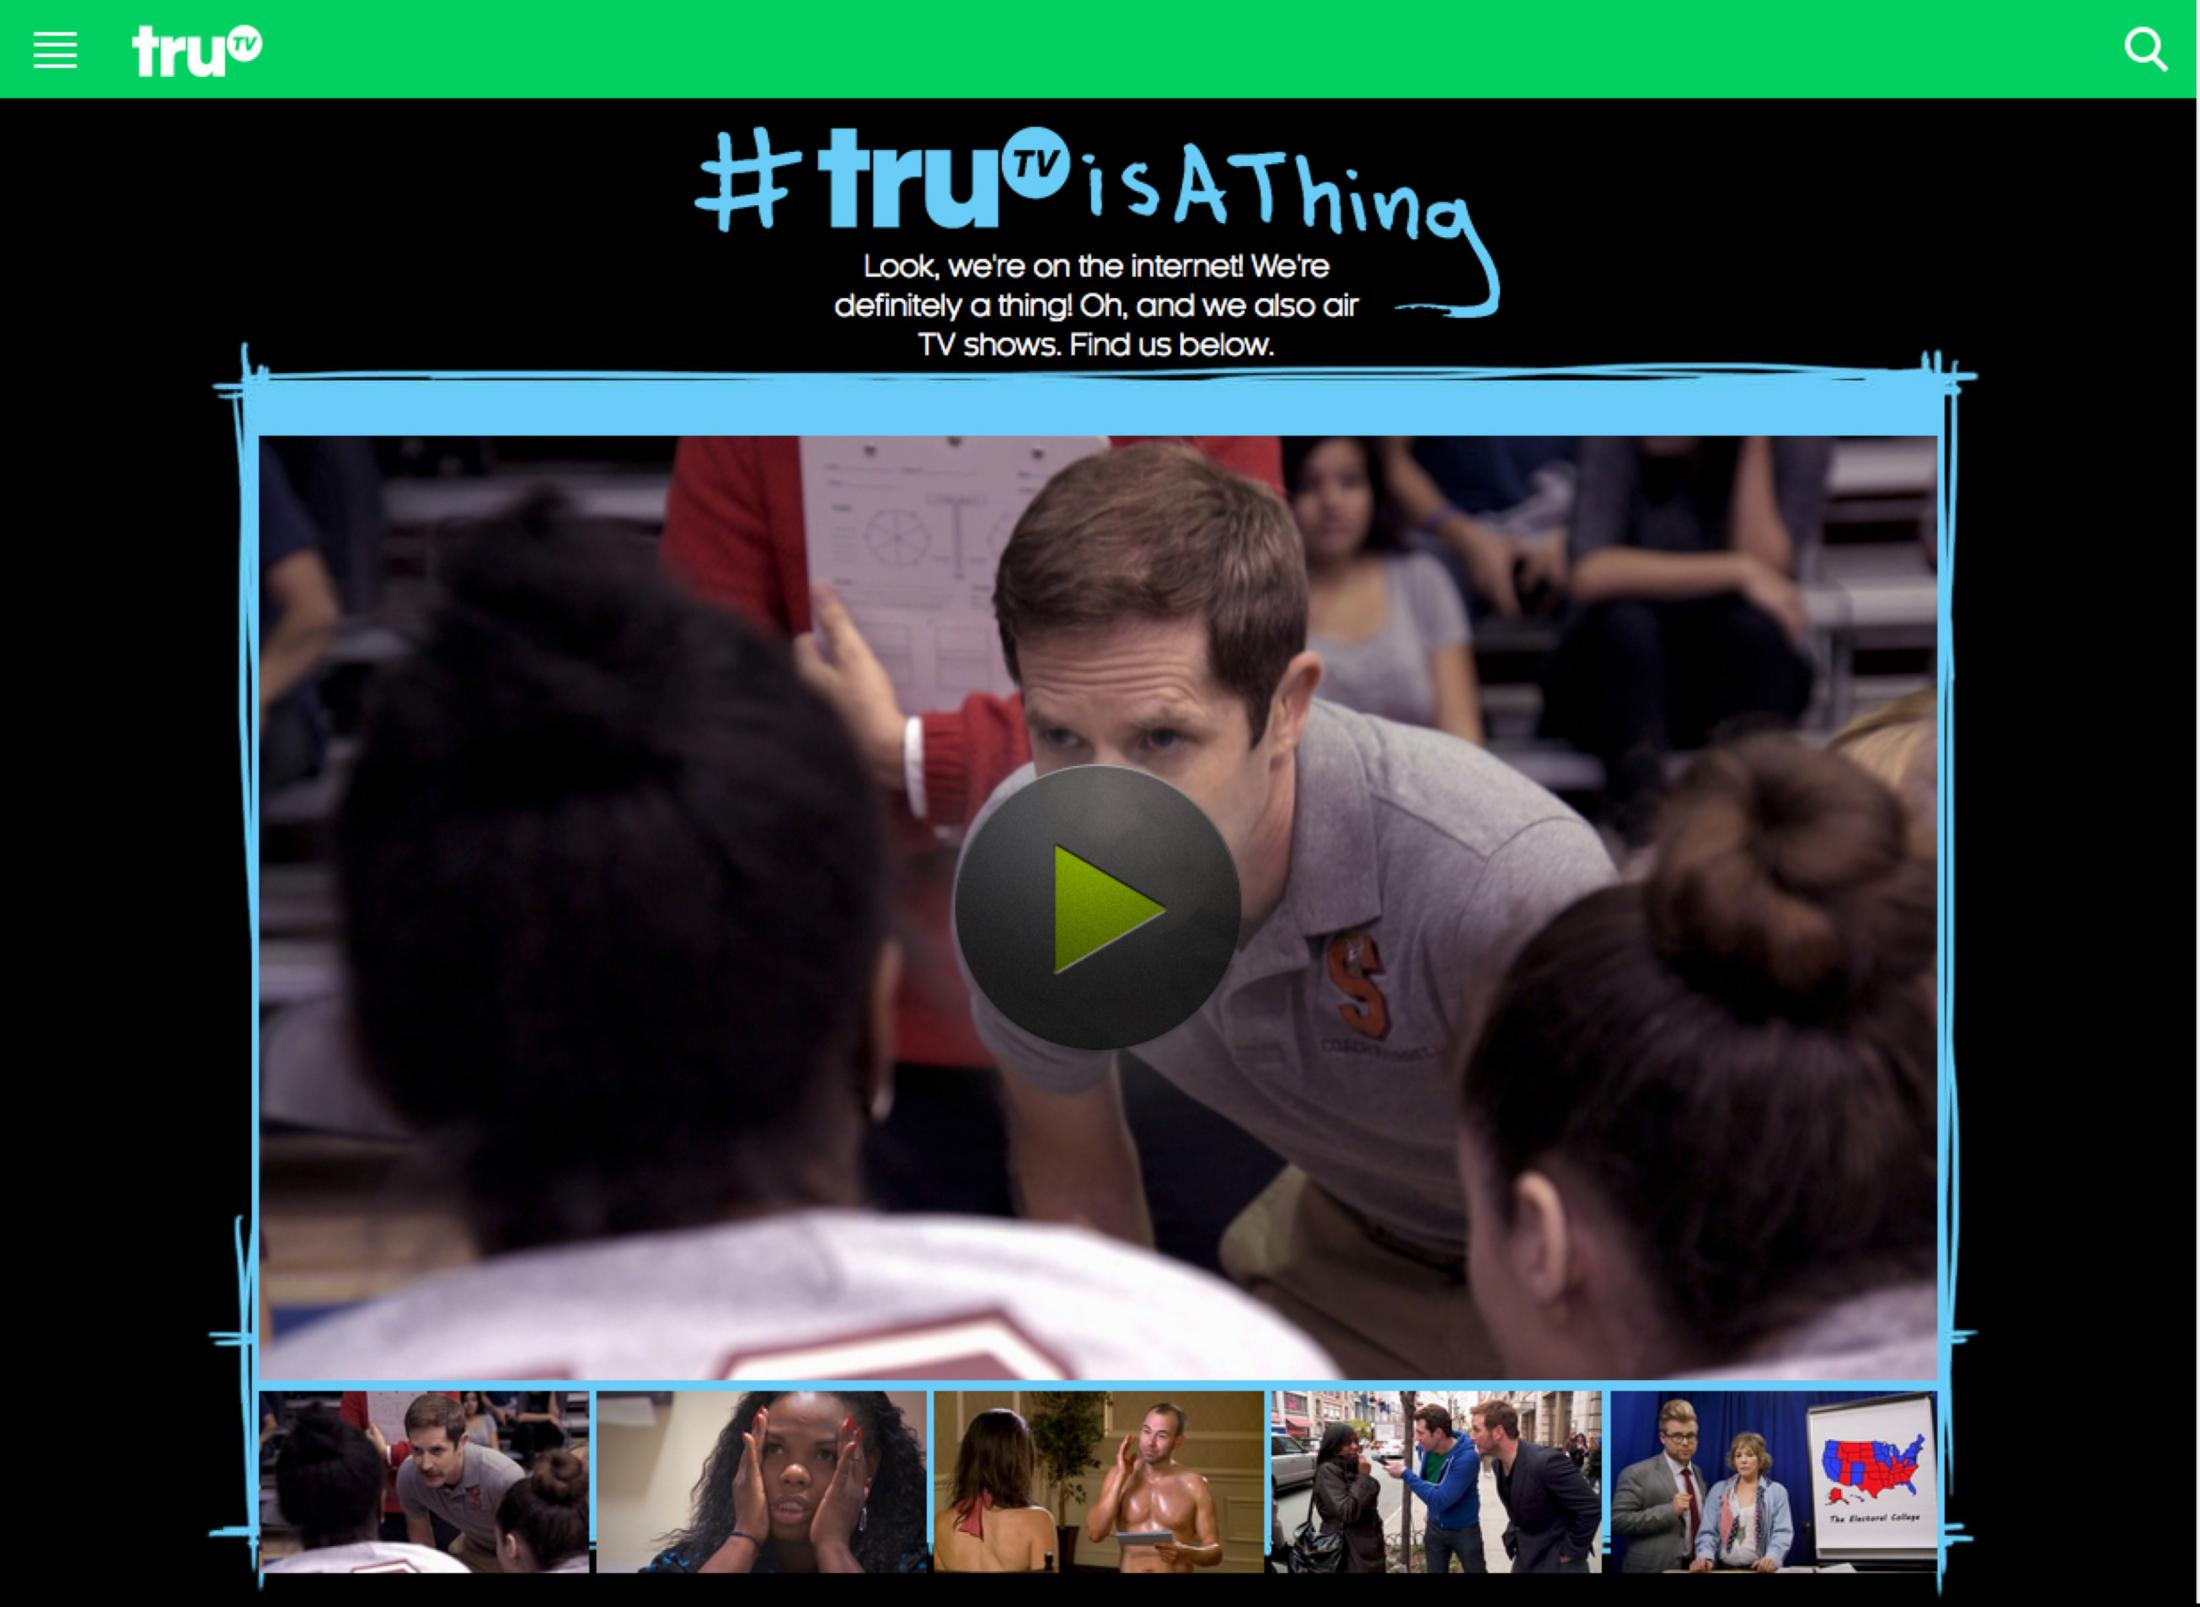 Thumbnail for #truTVisAThing Brand Awareness Campaign